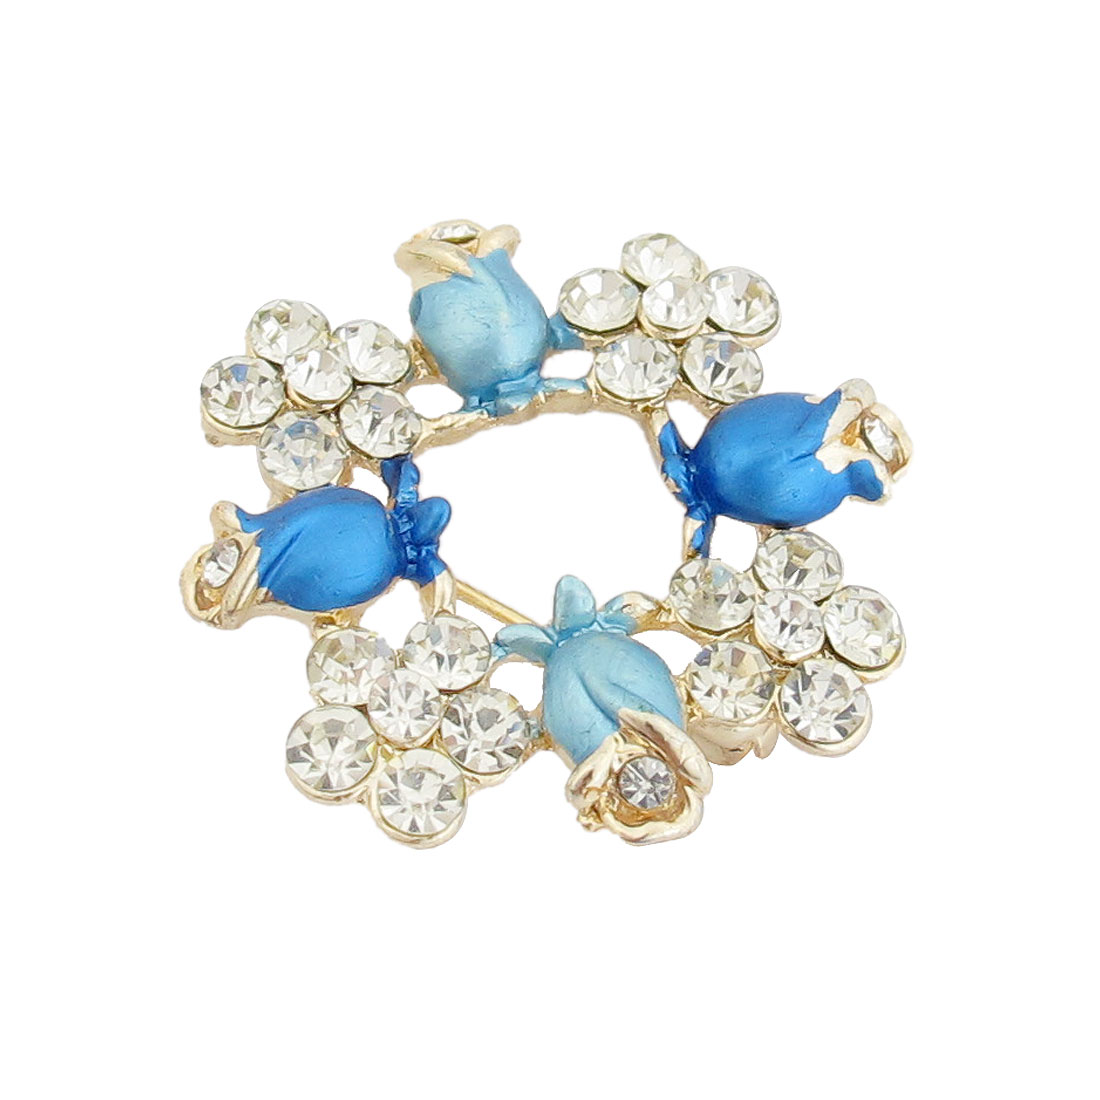 Blue Flower Rhinestone Inlaid Garland Brooch Breastpin Dress Ornament